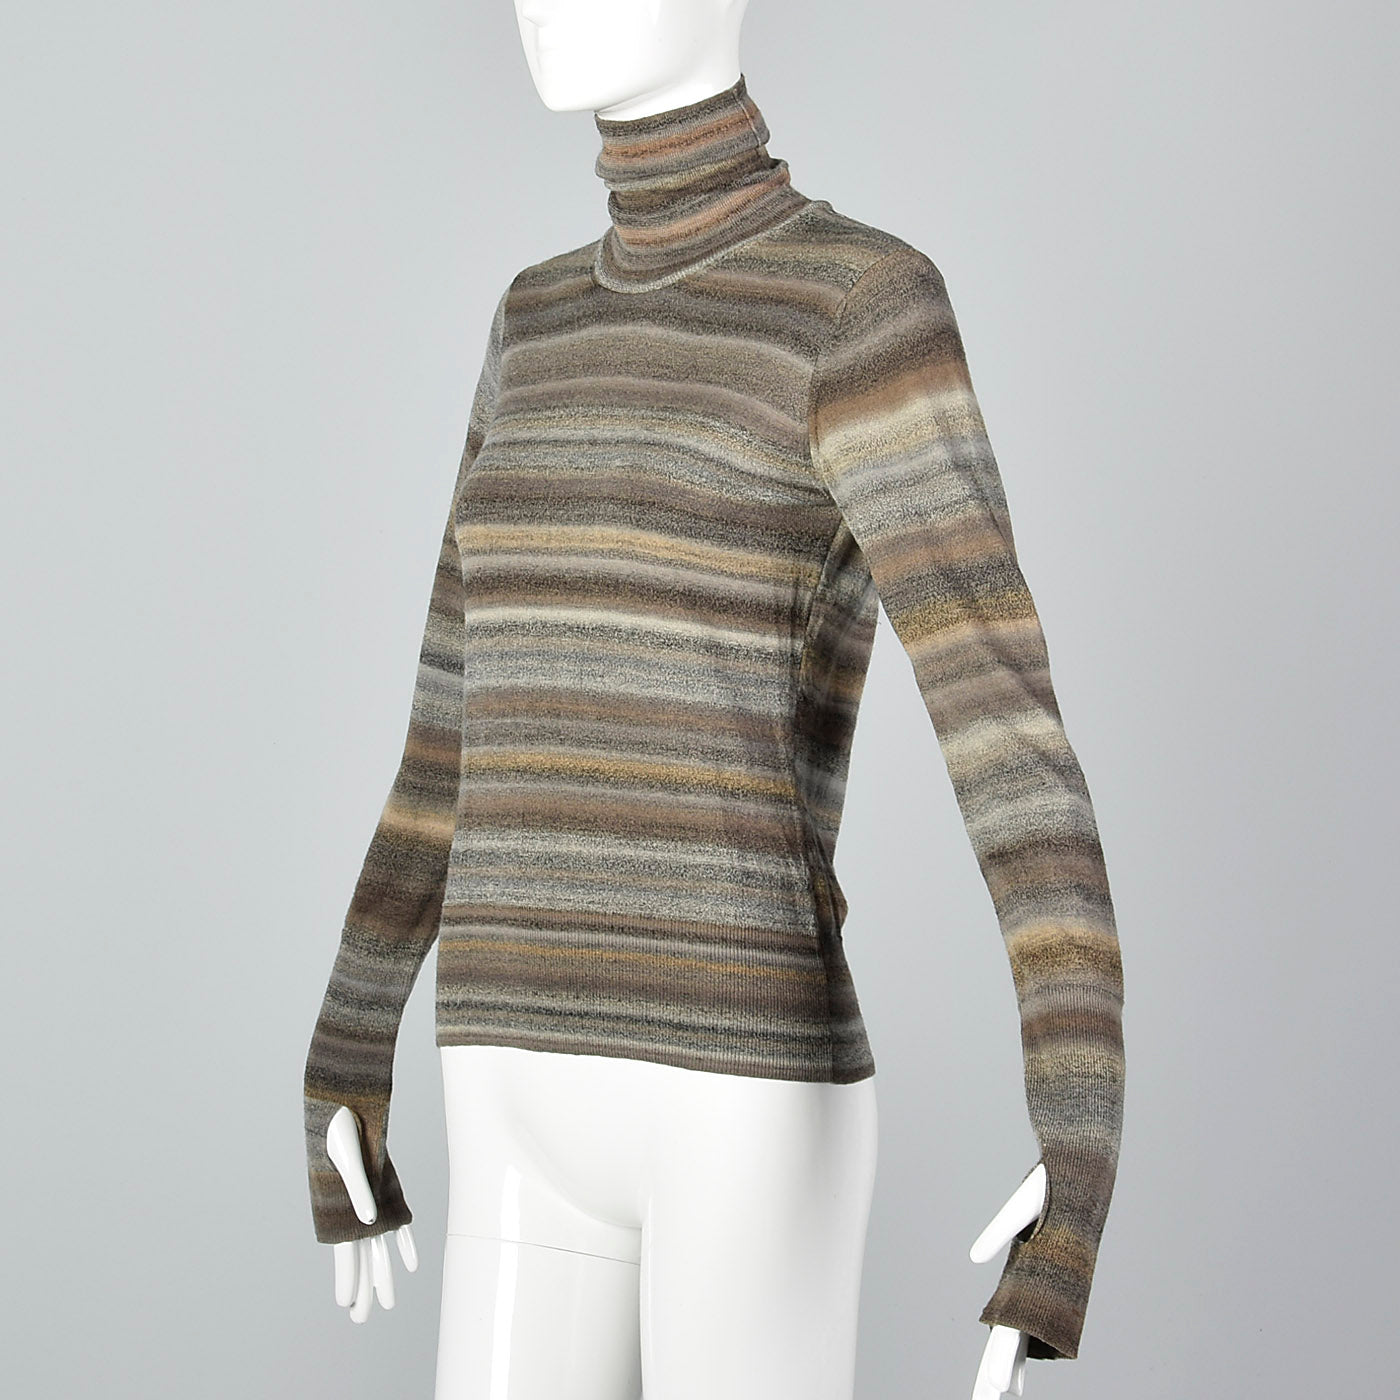 2000s Yves Saint Laurent Striped Knit Turtleneck